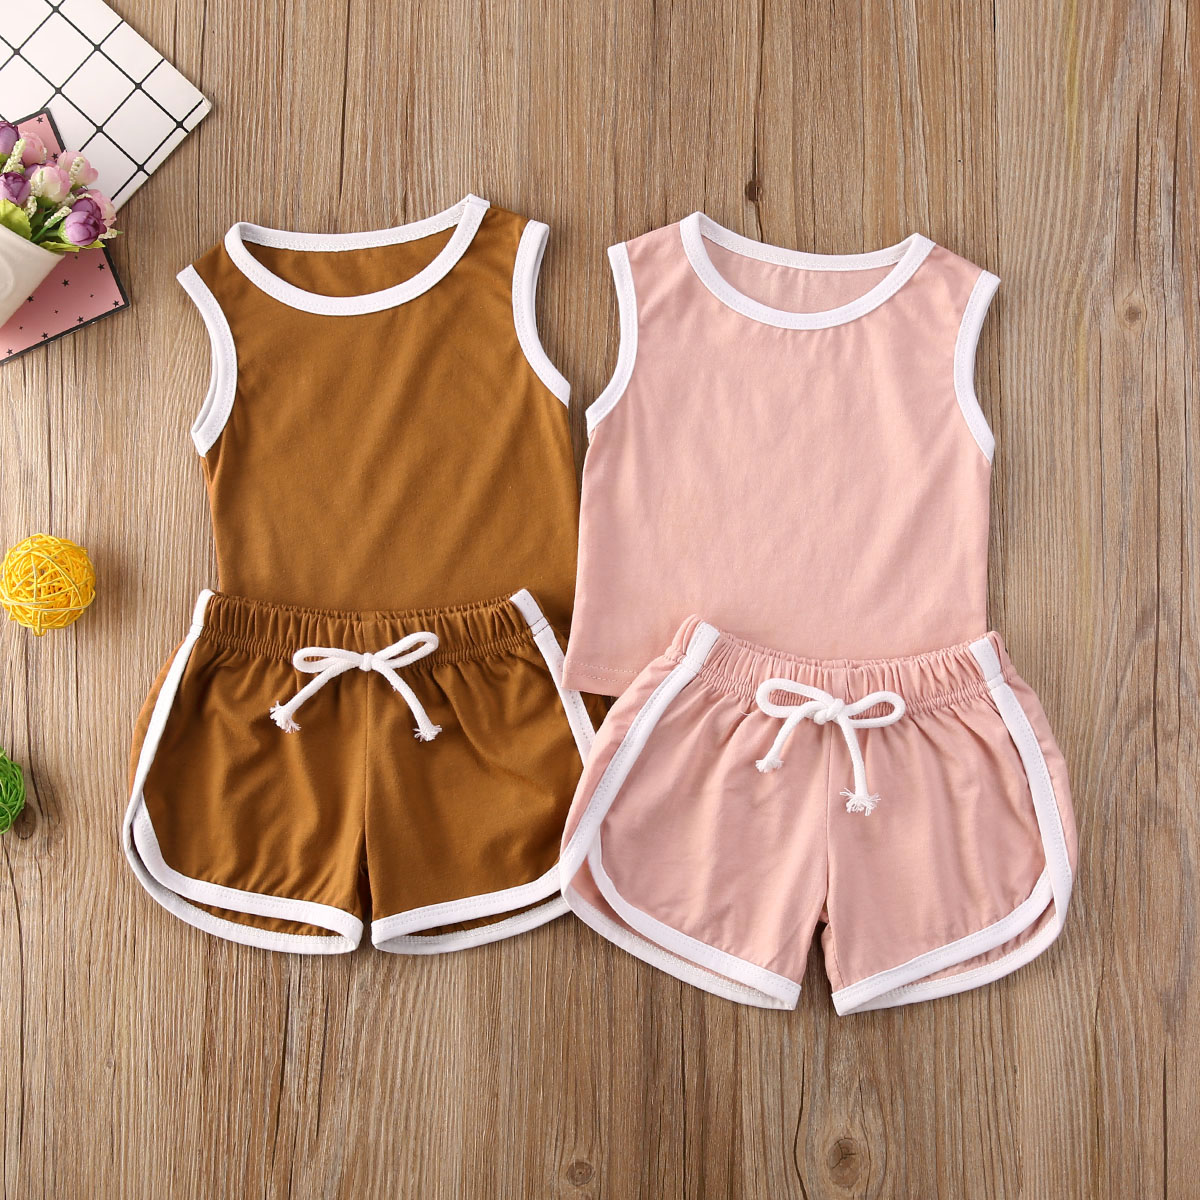 Hot Sale Summer Children Clothes Set Baby Boys Girls Casual Outfits Suit For Sport Sleeveless Top+Short Pants Summer Sunsuit